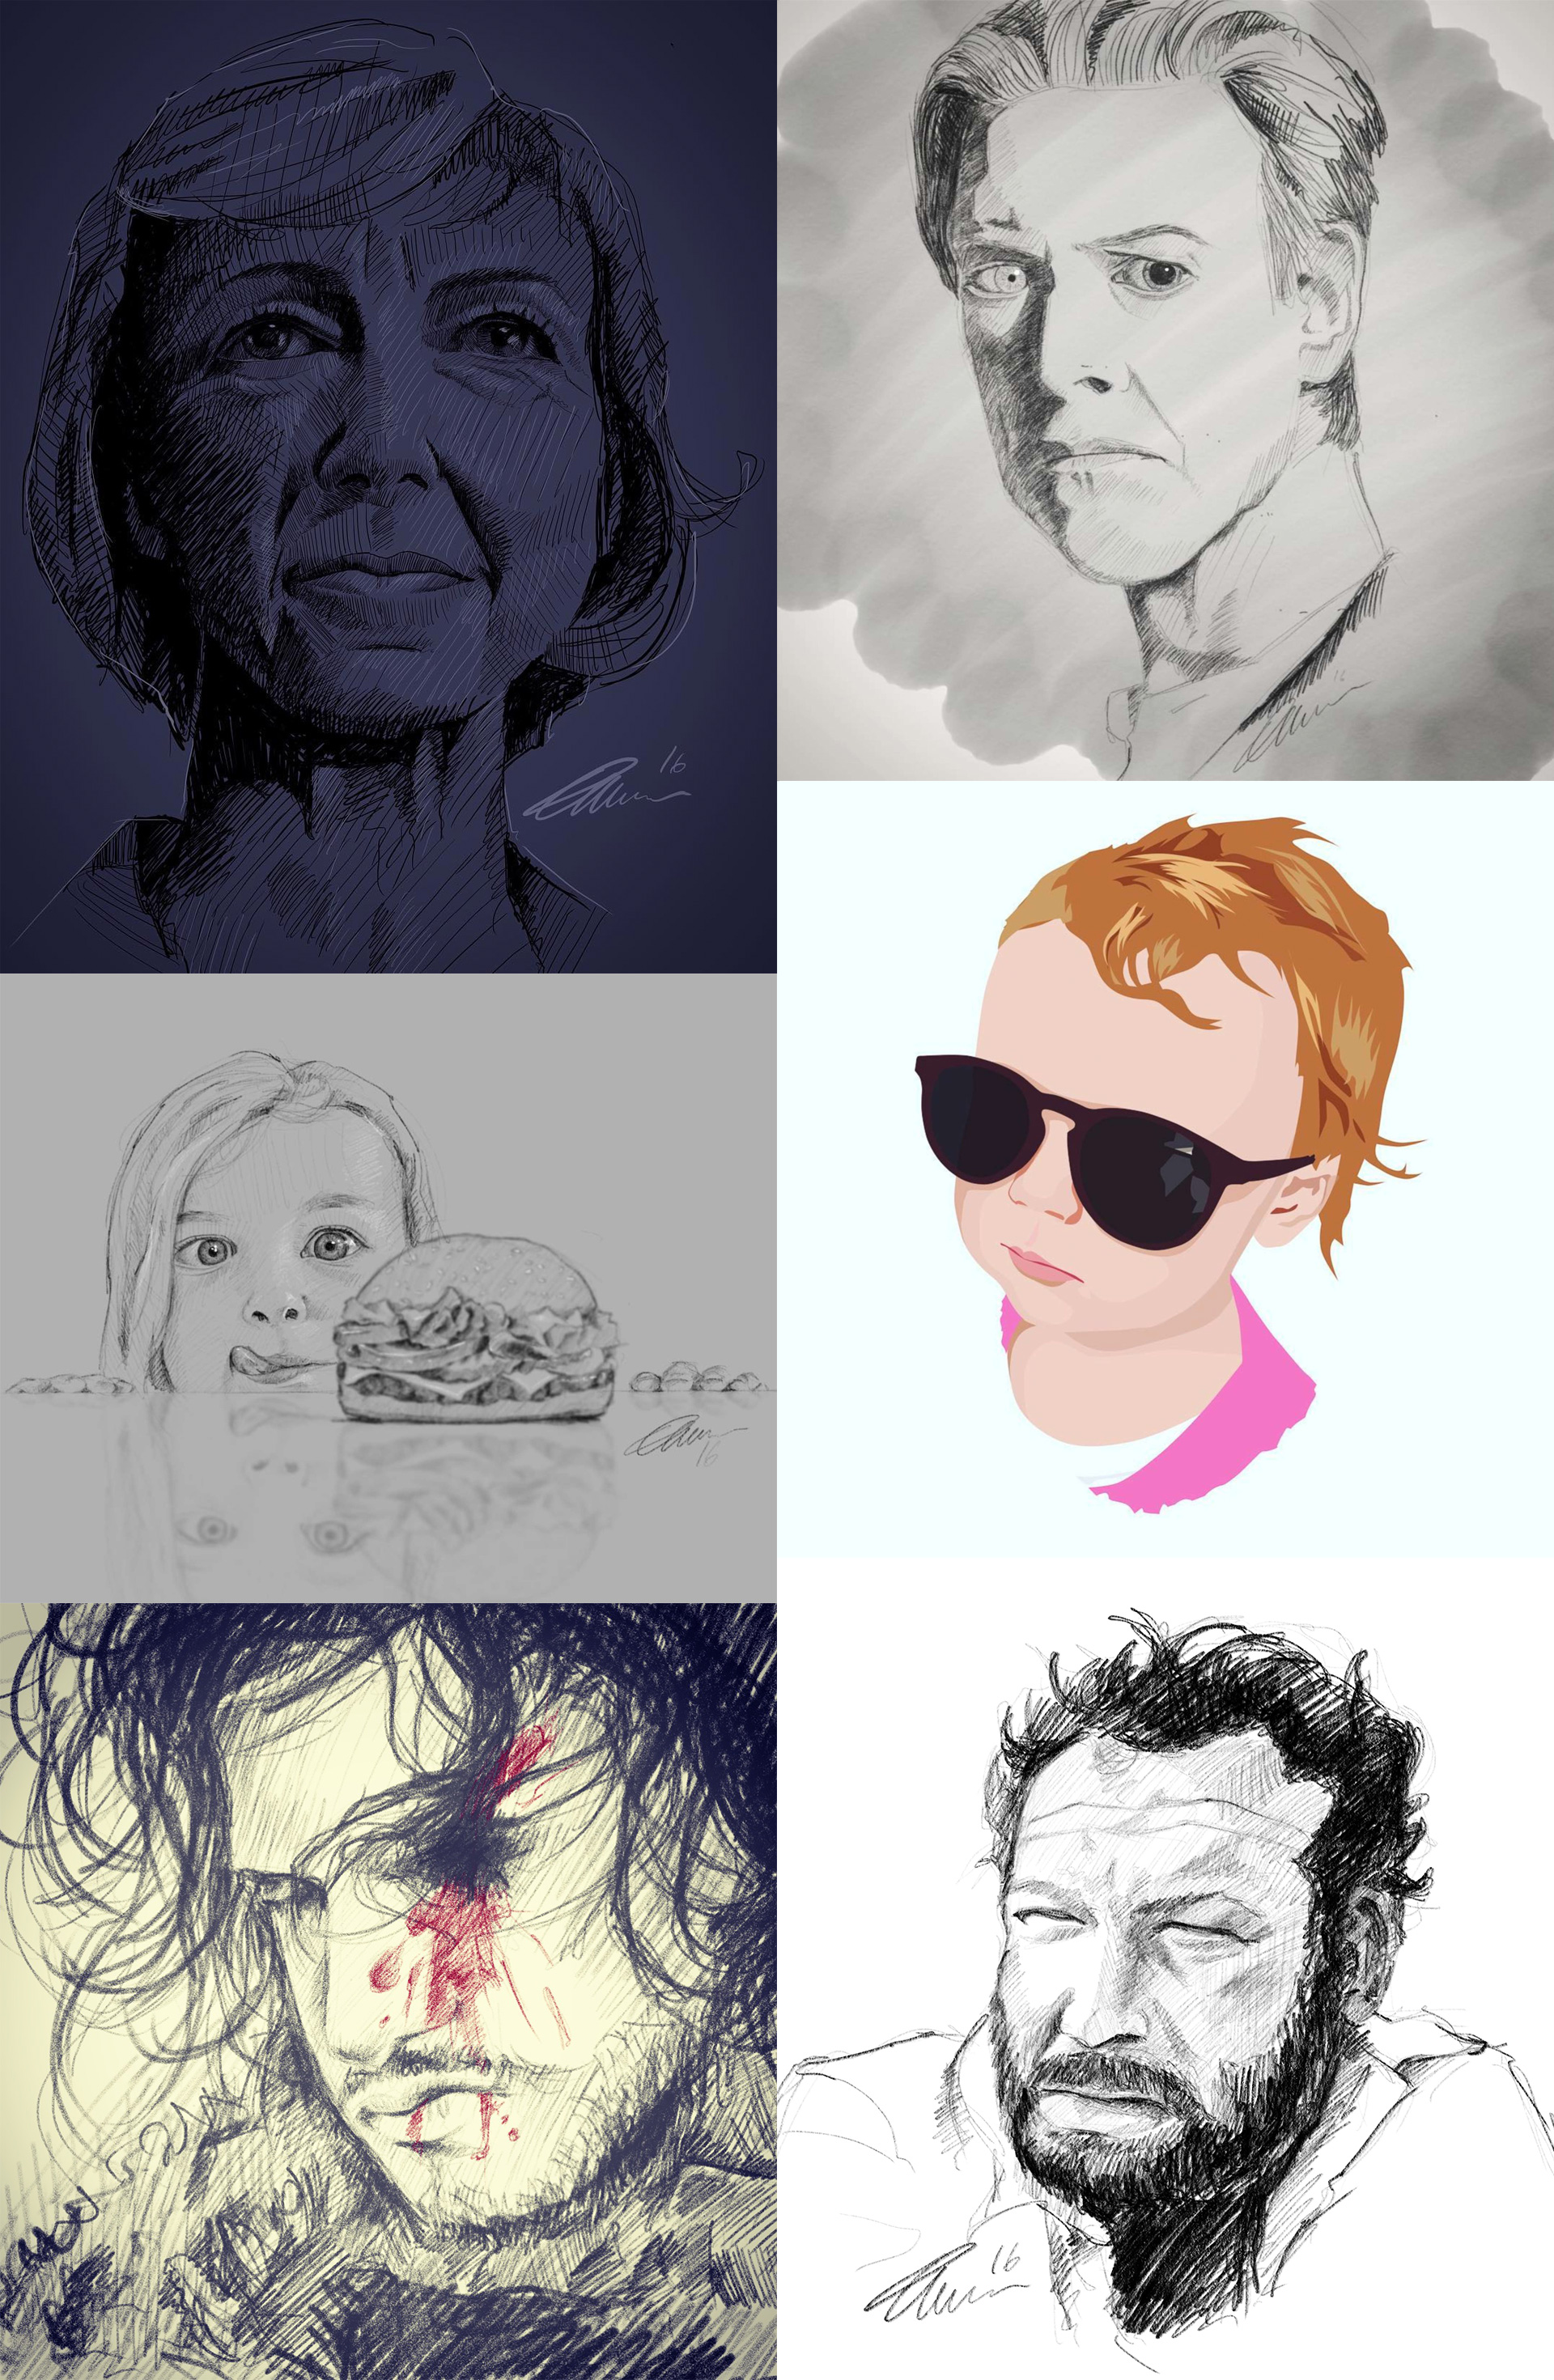 Illustrator and sketch artist from Buckinghamshire